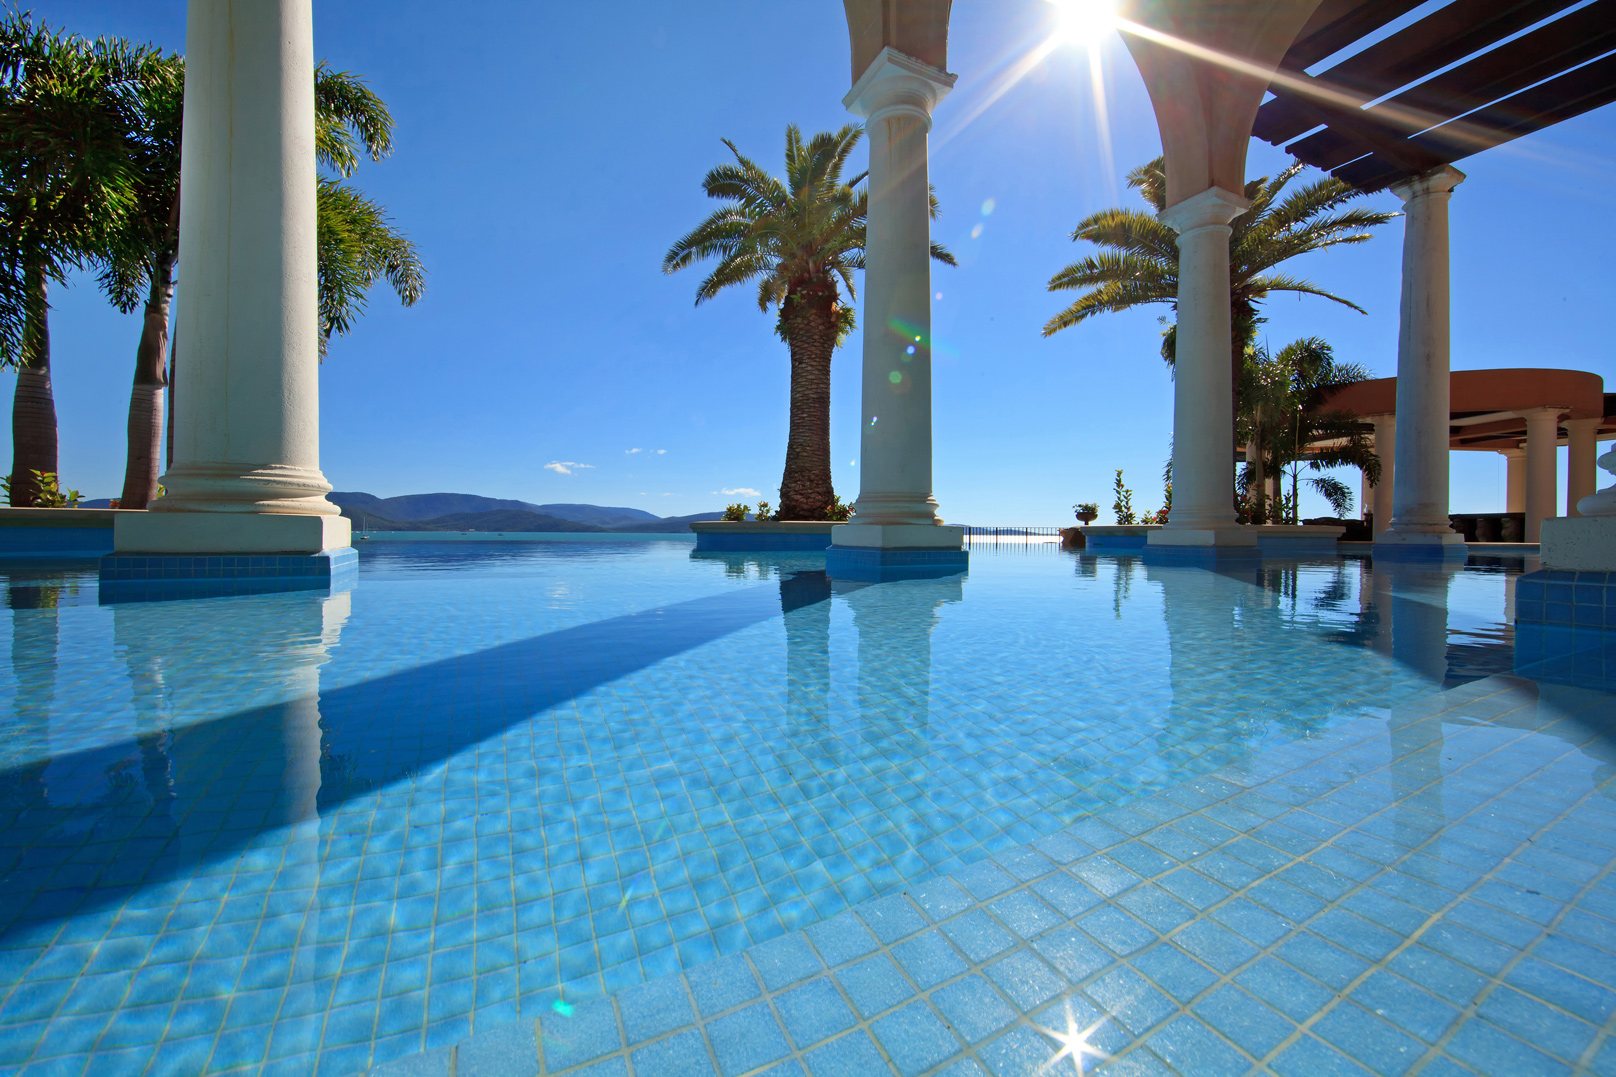 Qantas Travel Insider reviews the spectacular Villa Del Mare